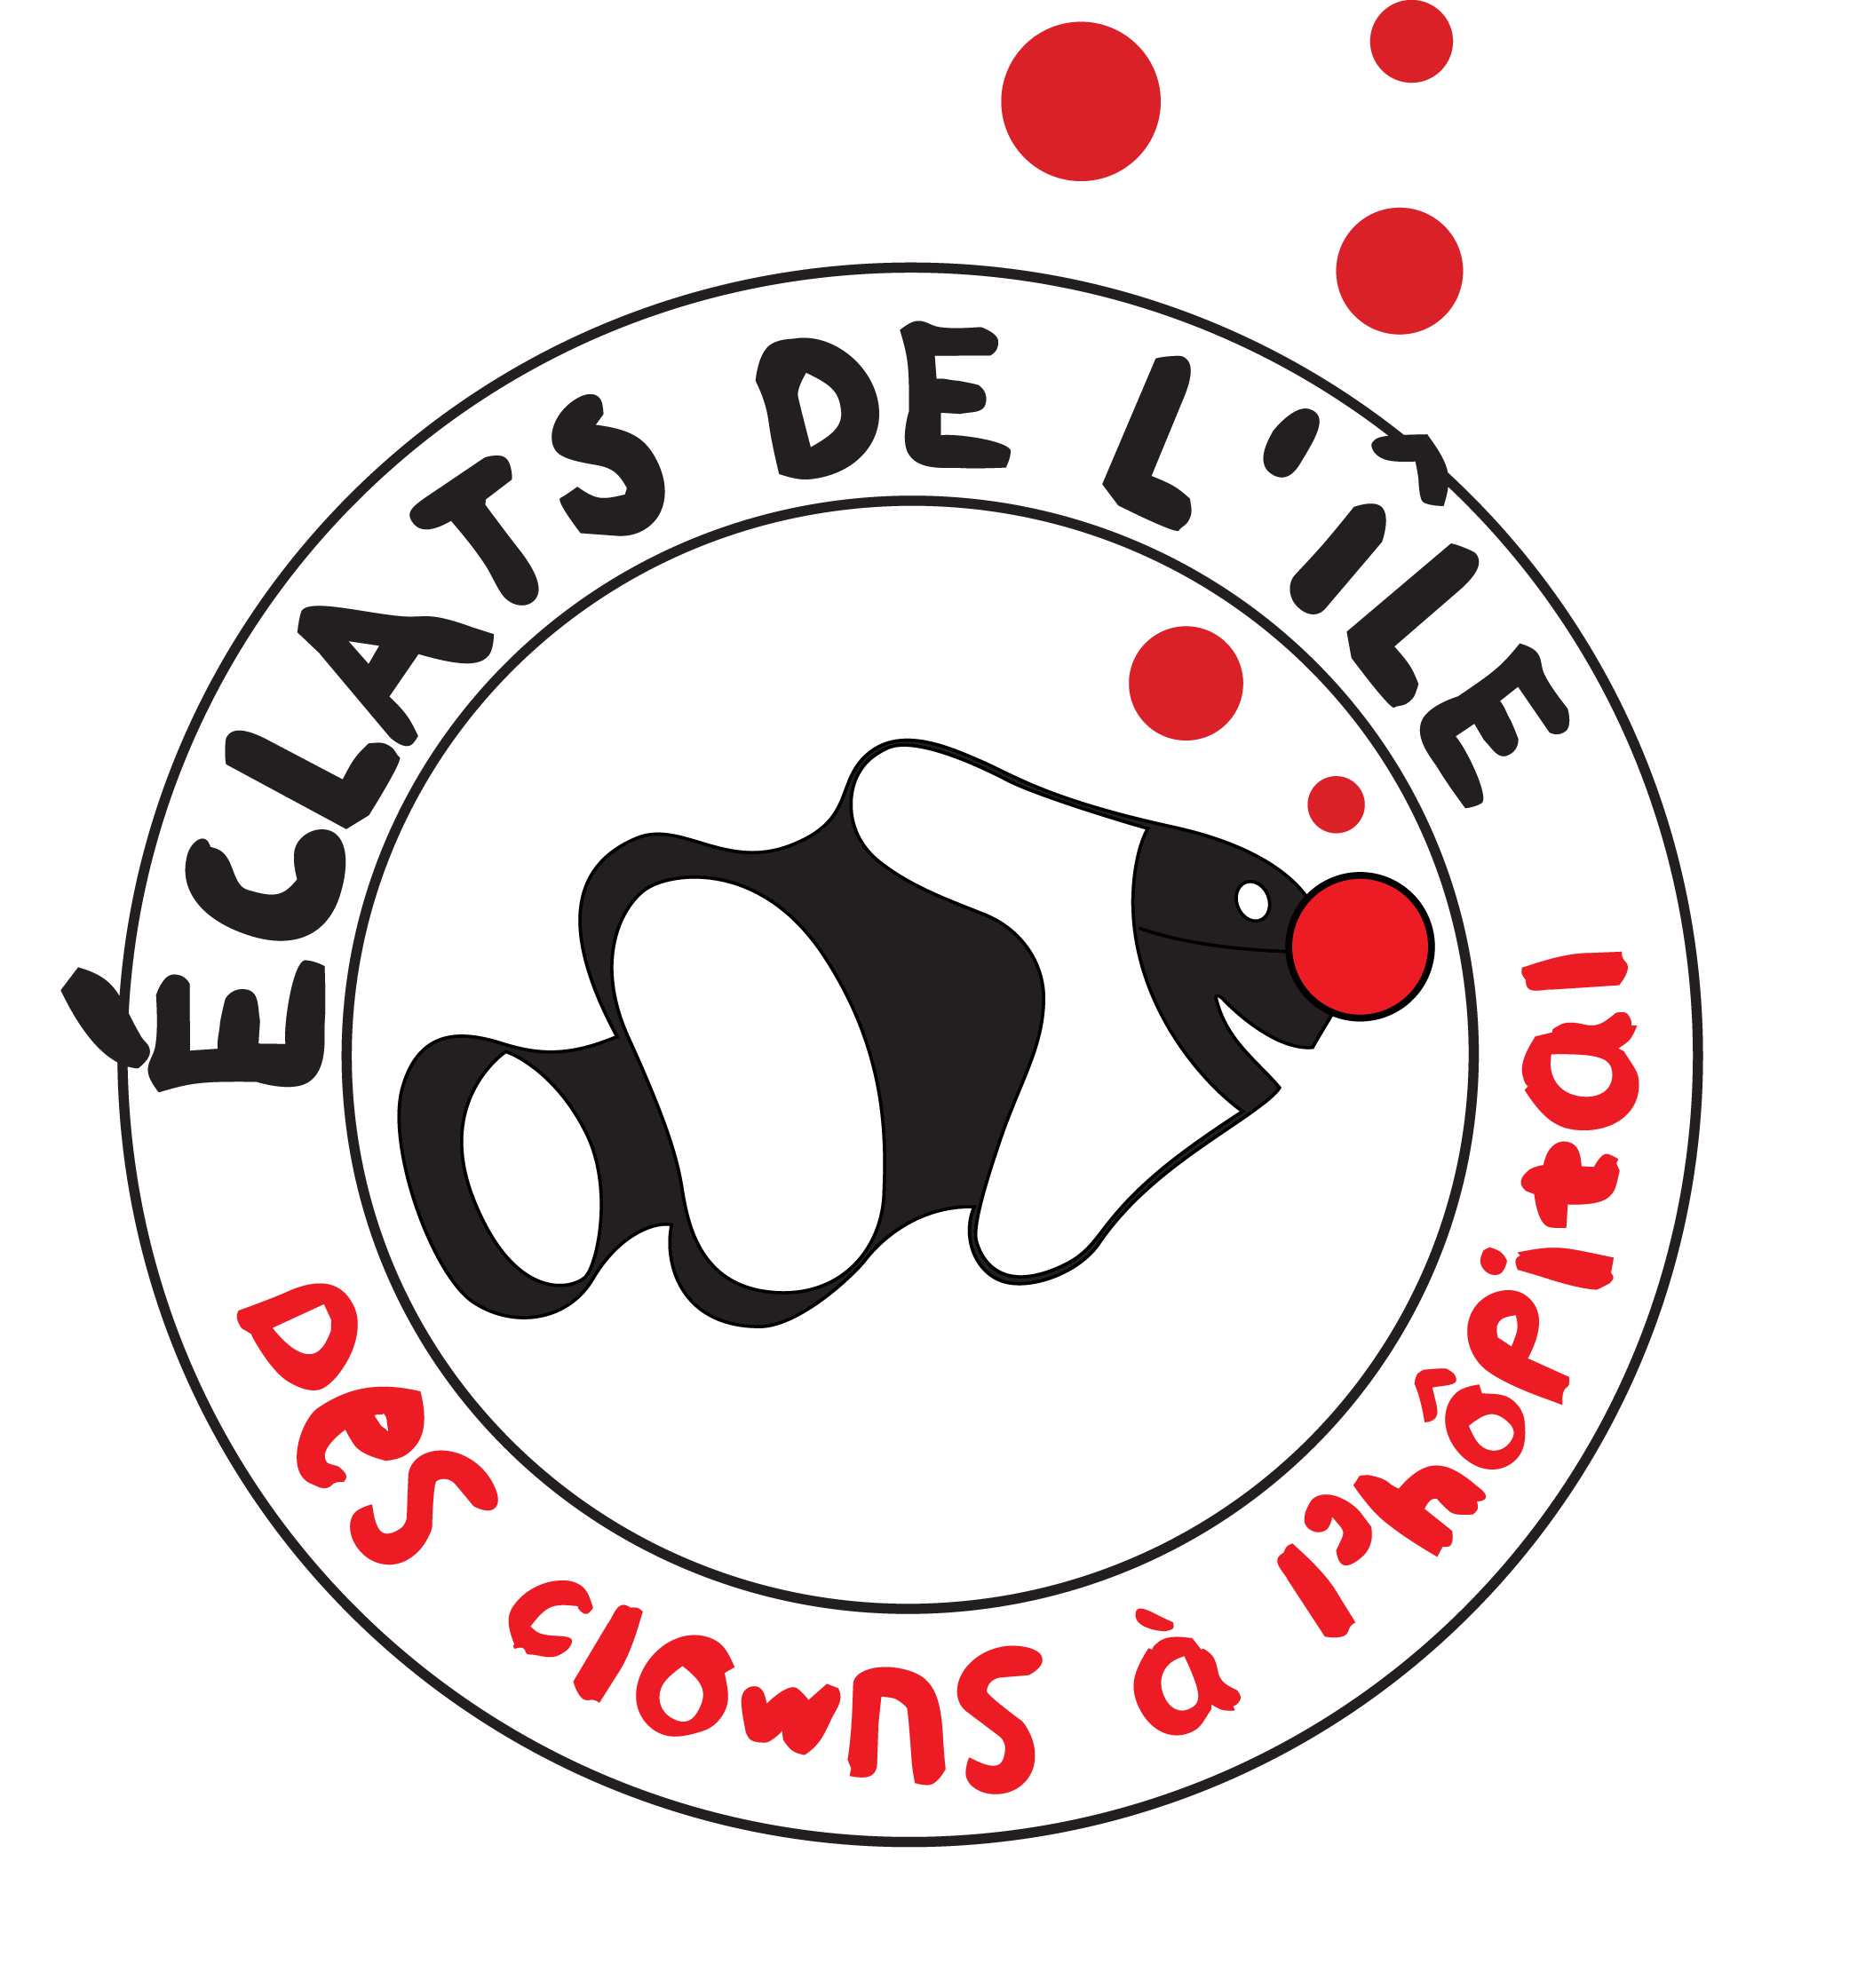 Association - Eclats de l'ile